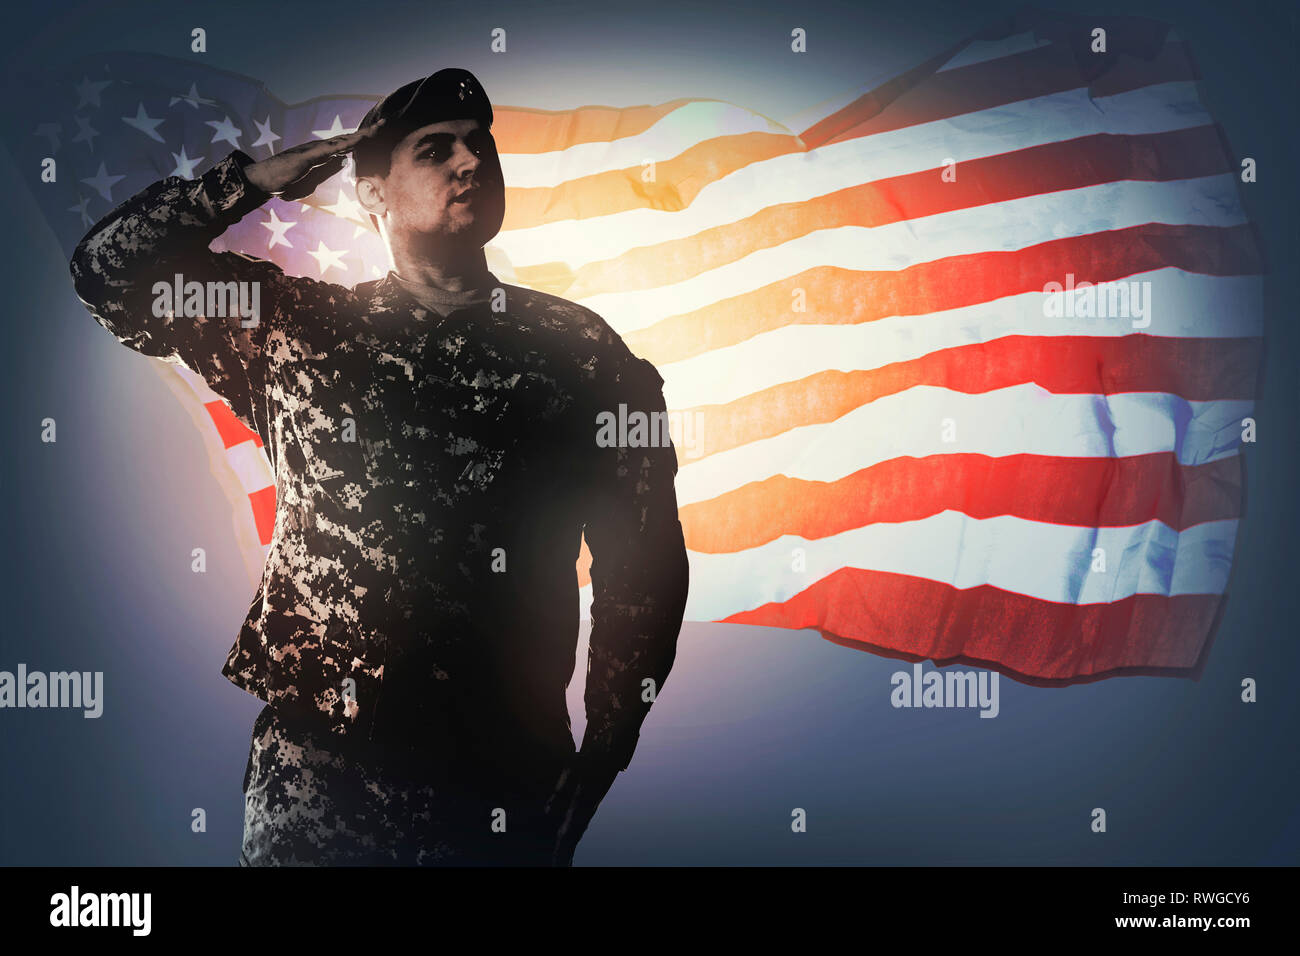 U.S. soldier standing at attention saluting proudly with honor and respect to his country. - Stock Image